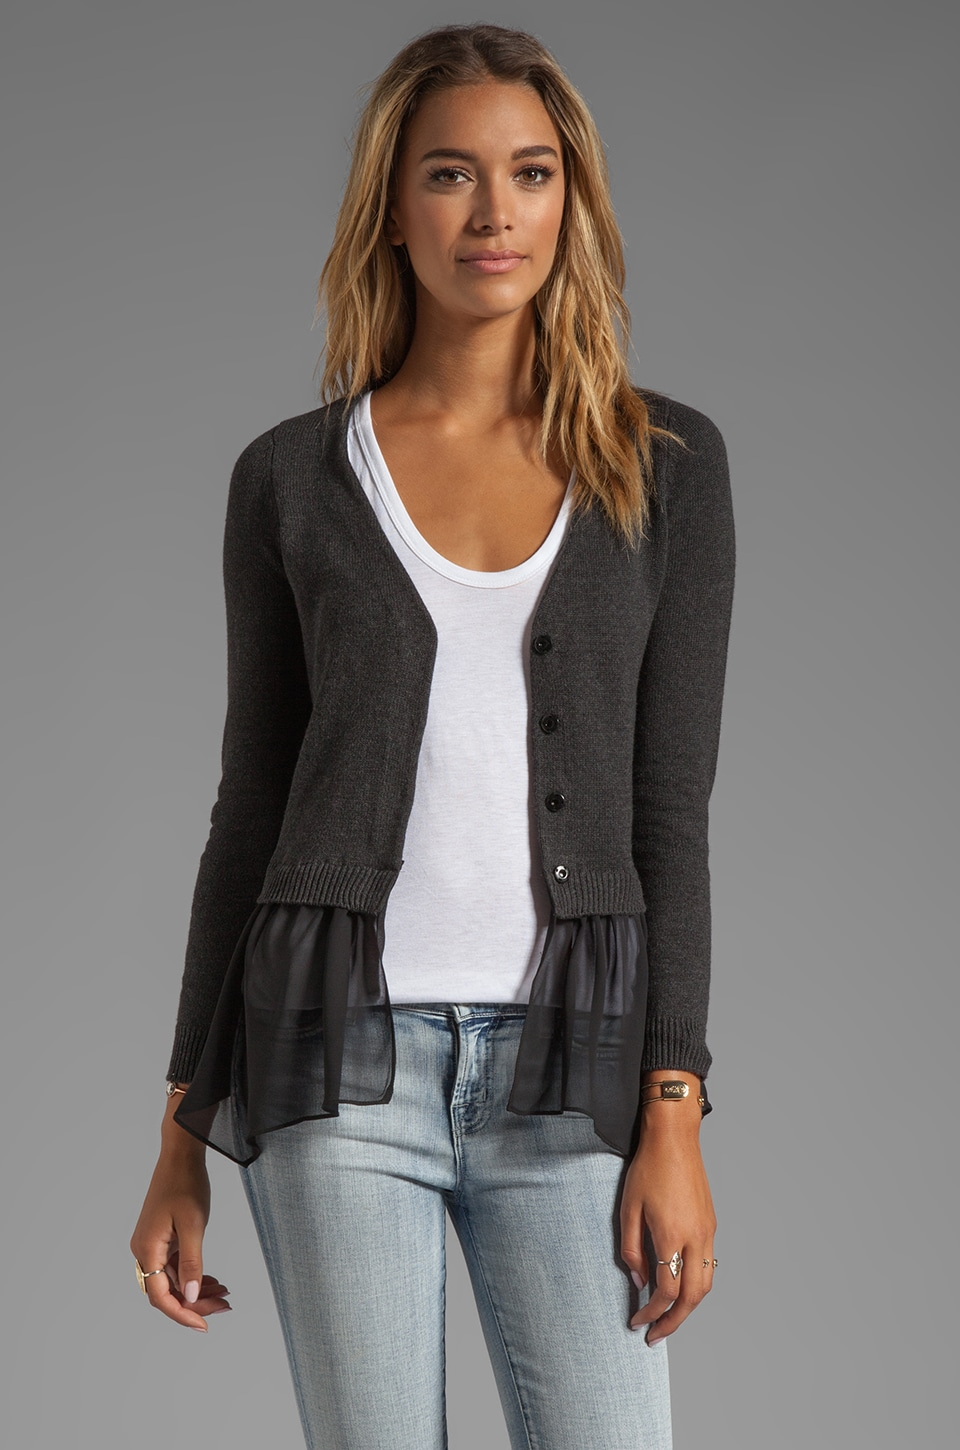 Central Park West Andover Cardigan in Charcoal